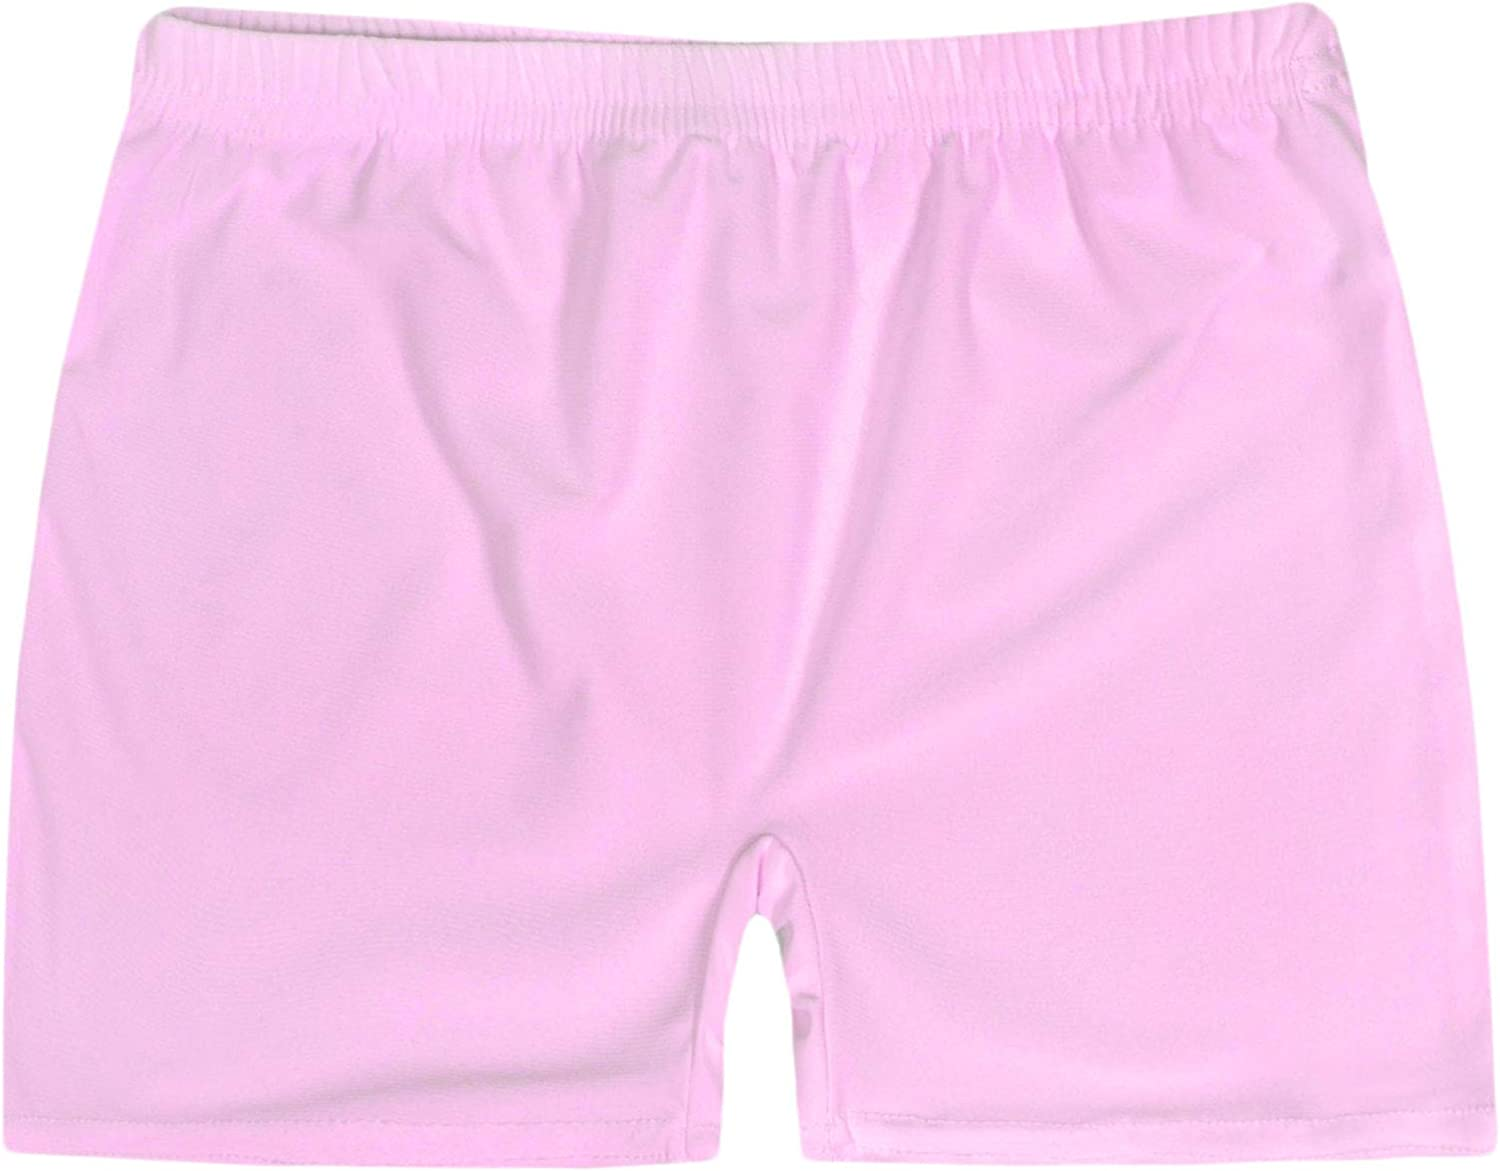 JollyRascals Girls Shorts Neon Hot Pants Stretchy School Dance Gym Shorts Kids New Summer Party Holiday Bottoms Pants Age 5 6 7 8 9 10 11 12 13 Years